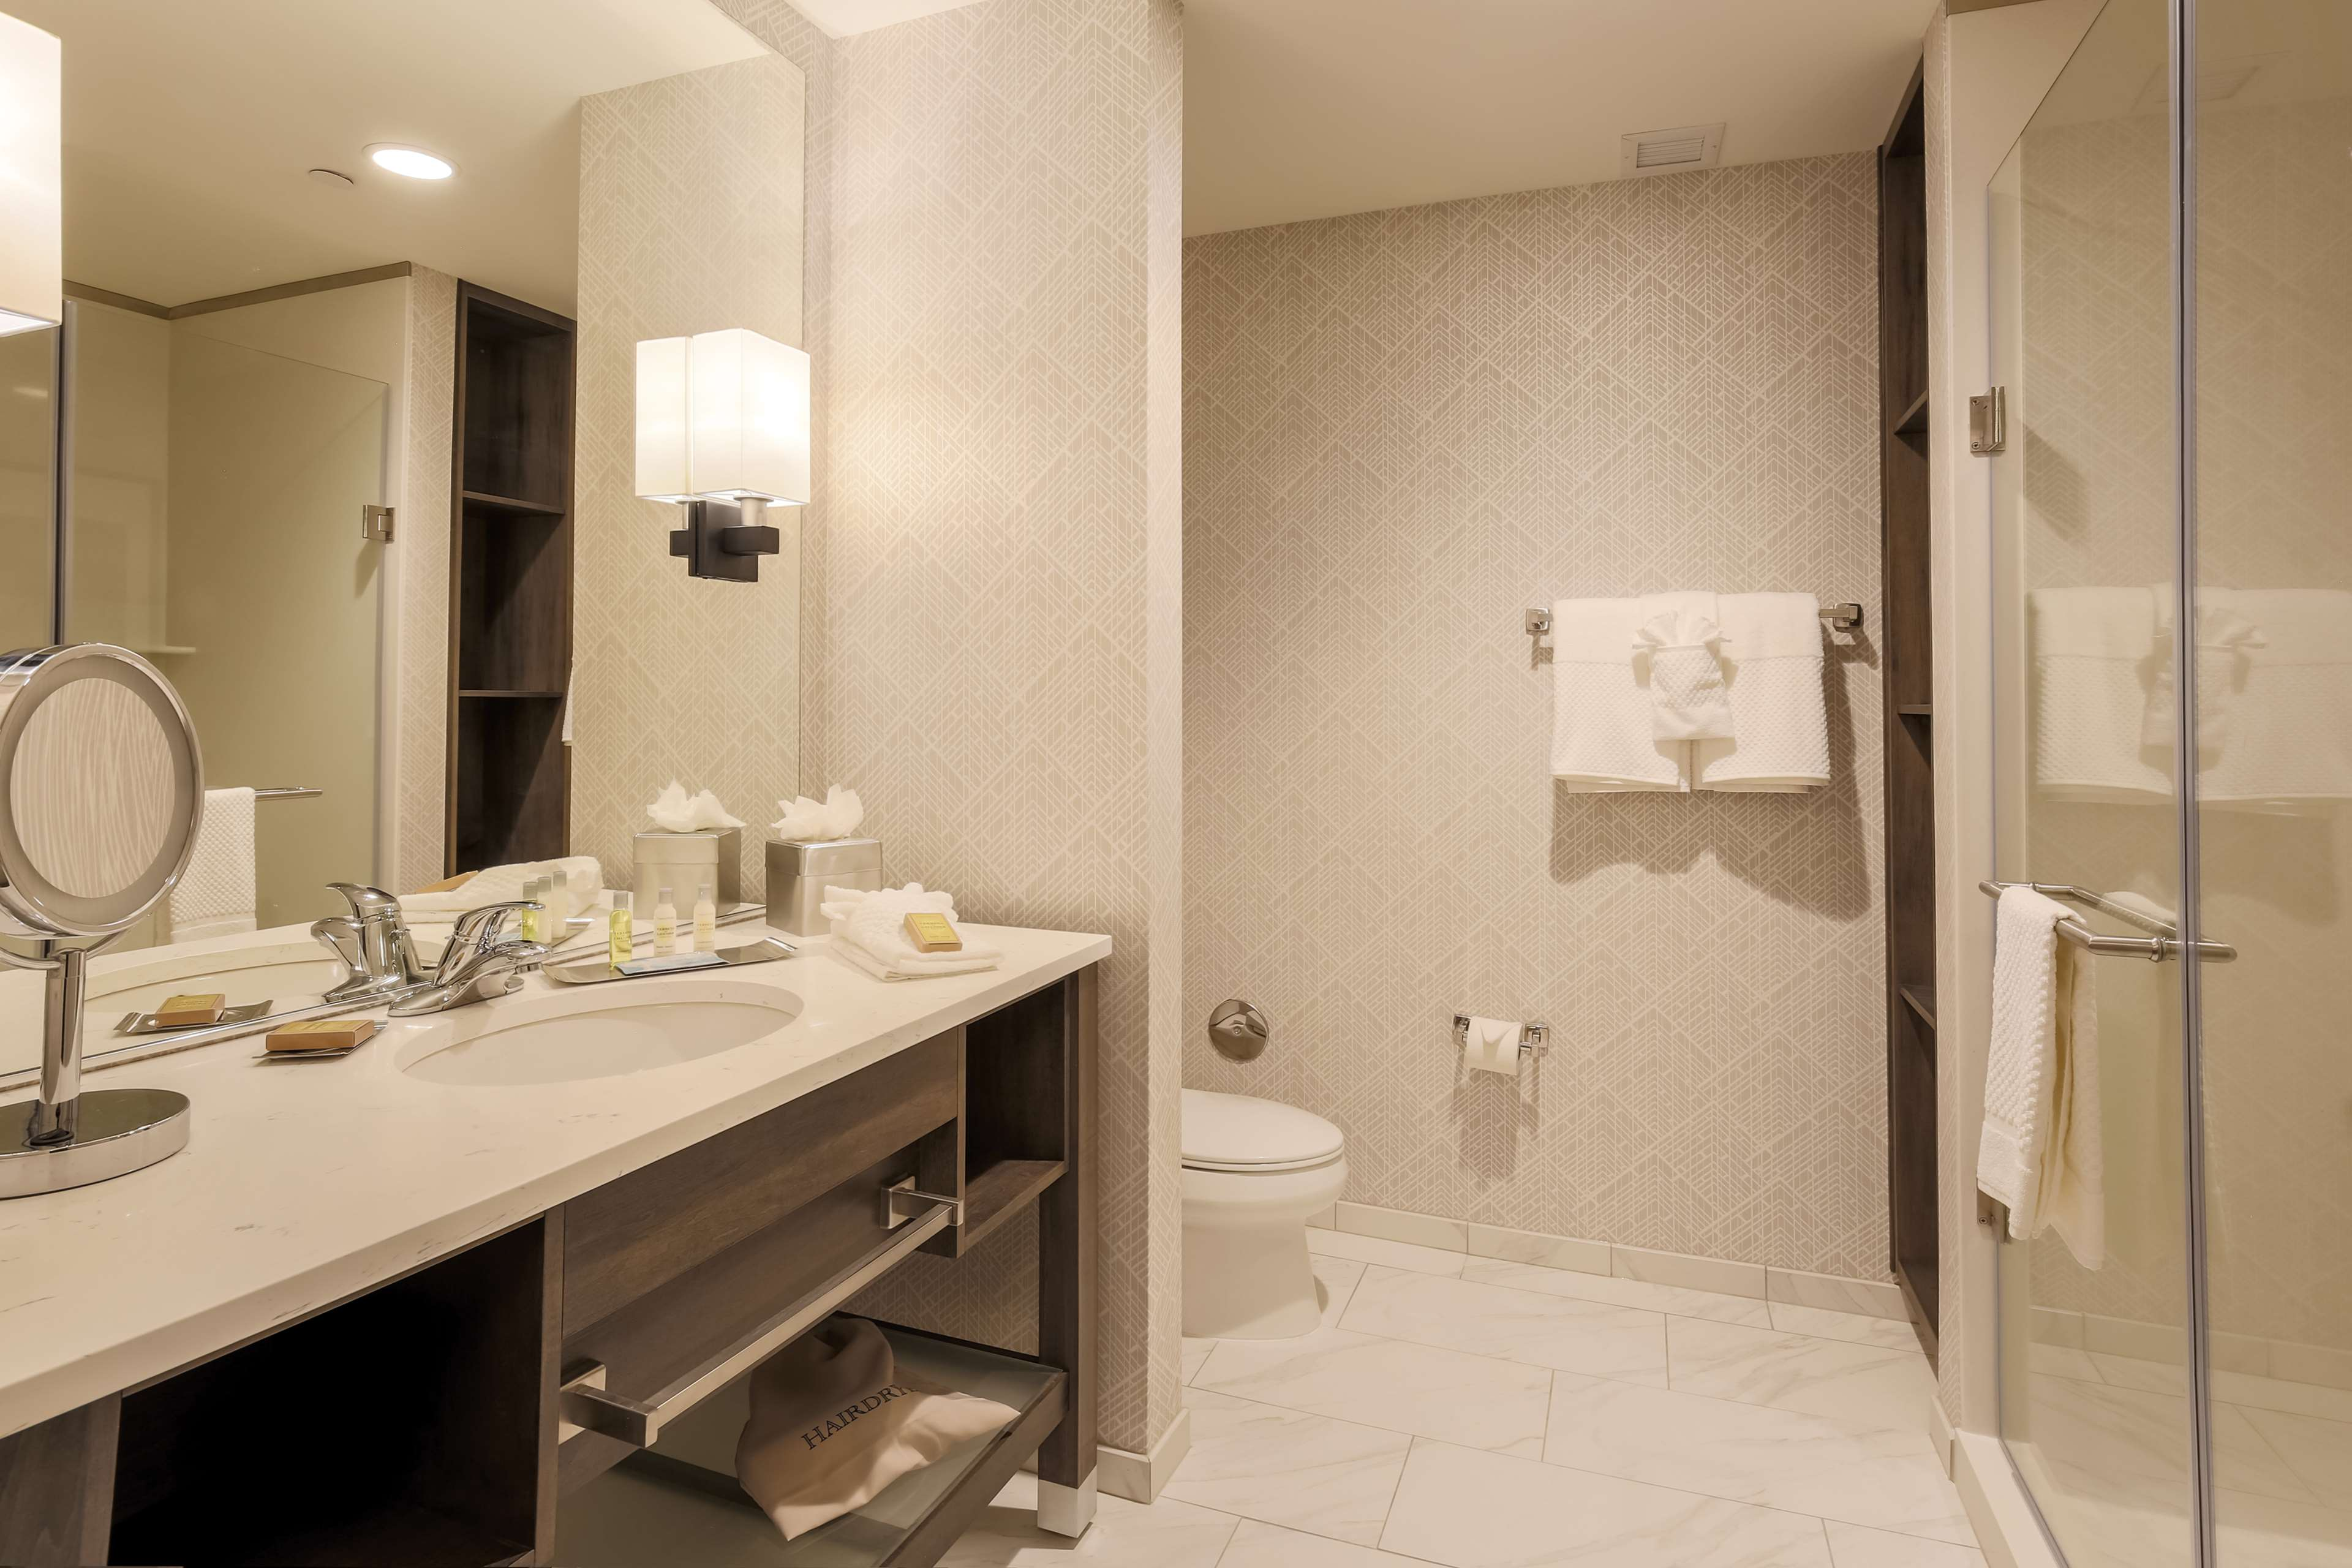 DoubleTree by Hilton Evansville image 35